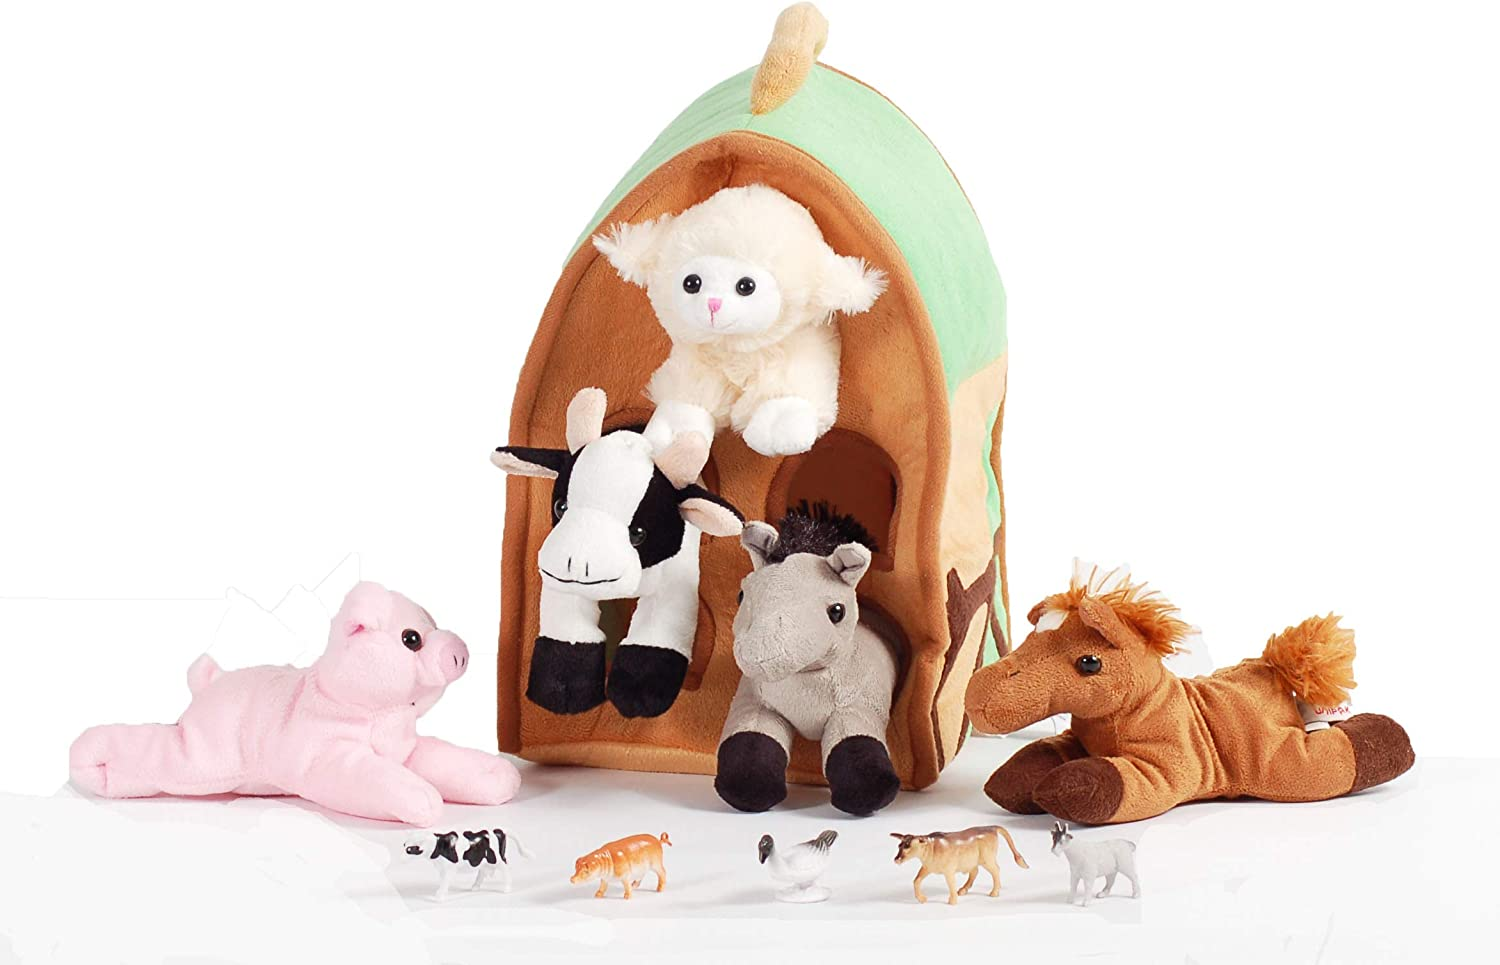 Amazon Com 12 Inch Plush Farm House Playset With 5 Stuffed Animals With Lamb Pig Cow Gray Horse And Brown Horse And 5 Farm Animal Figures Toys Games